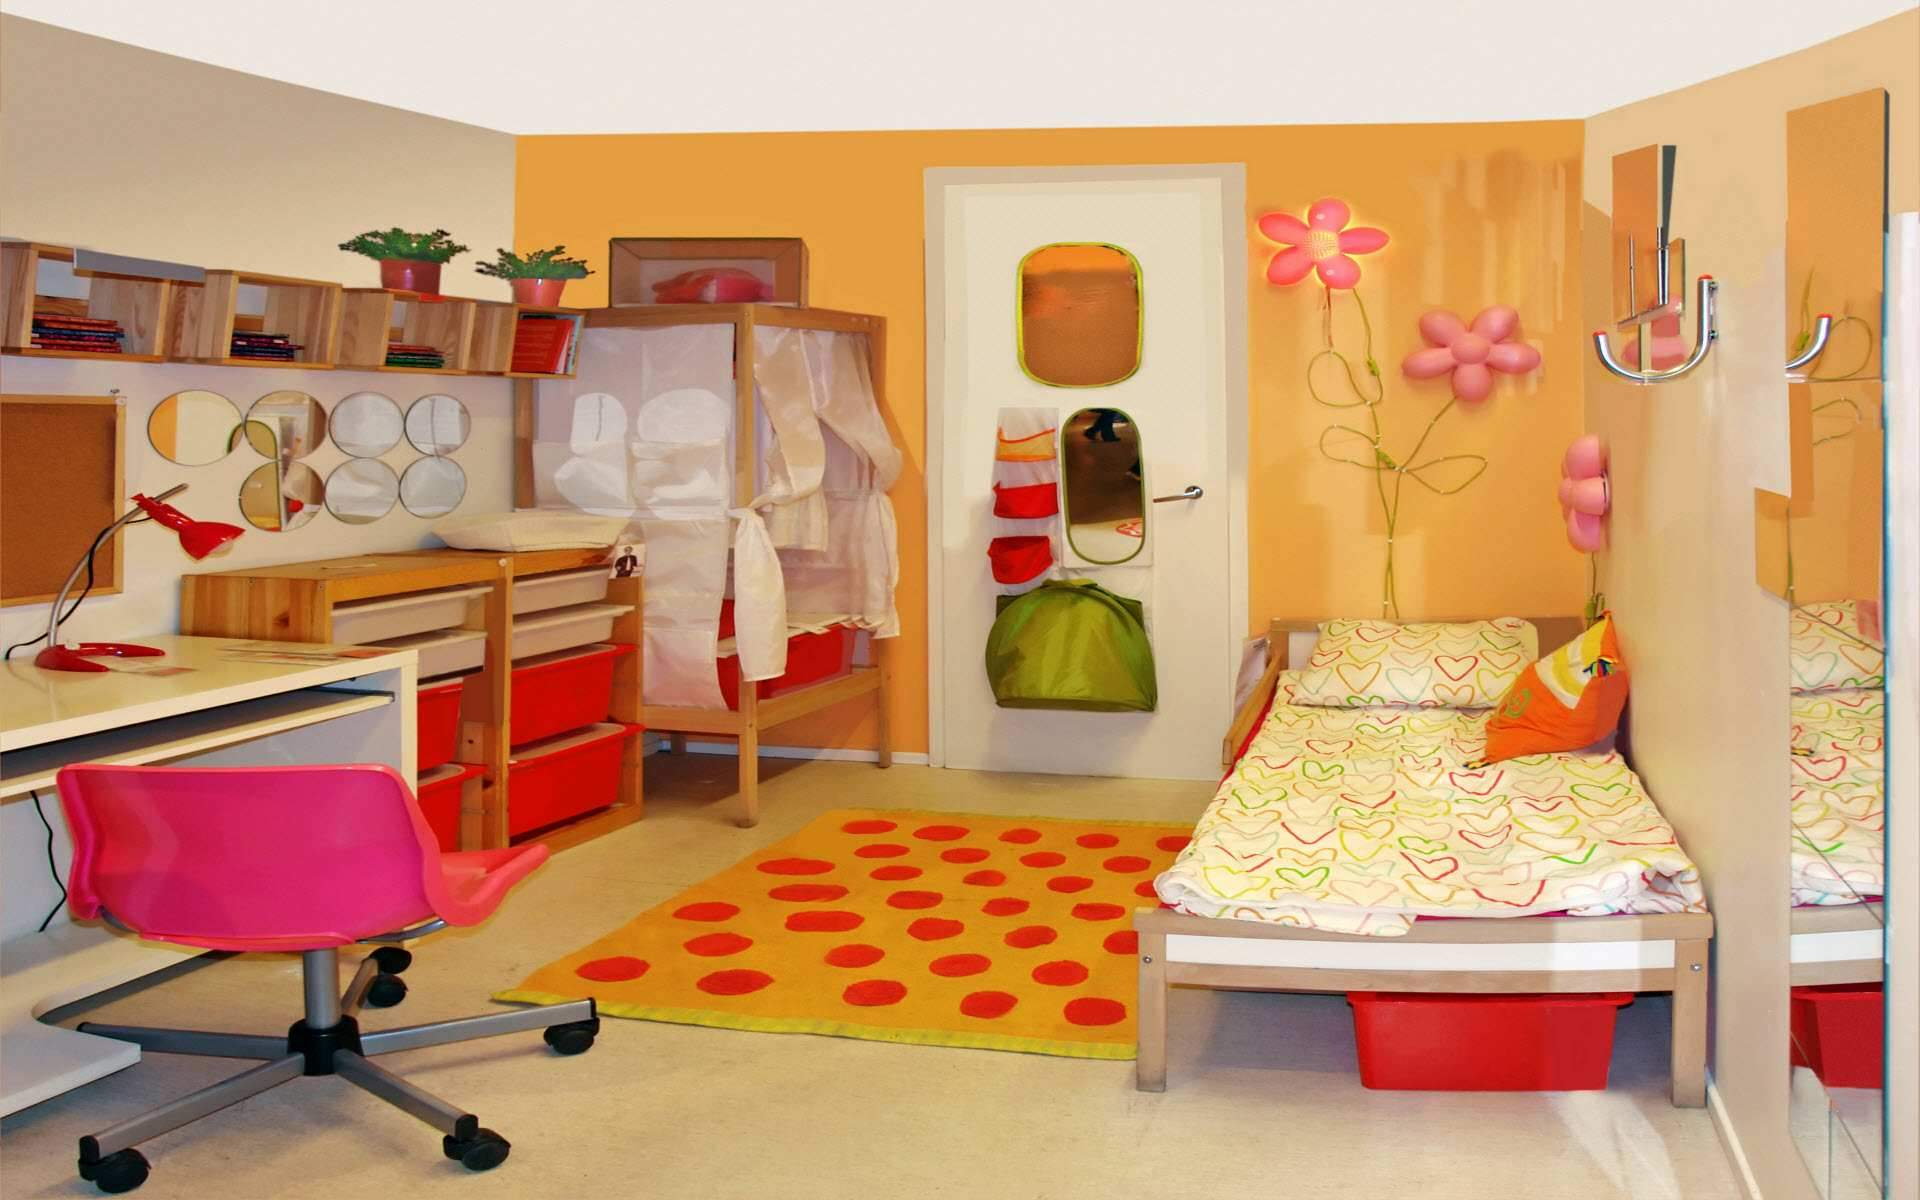 Unique small kids room decorating ideas image 012 small room decorating ideas - Kids room image ...